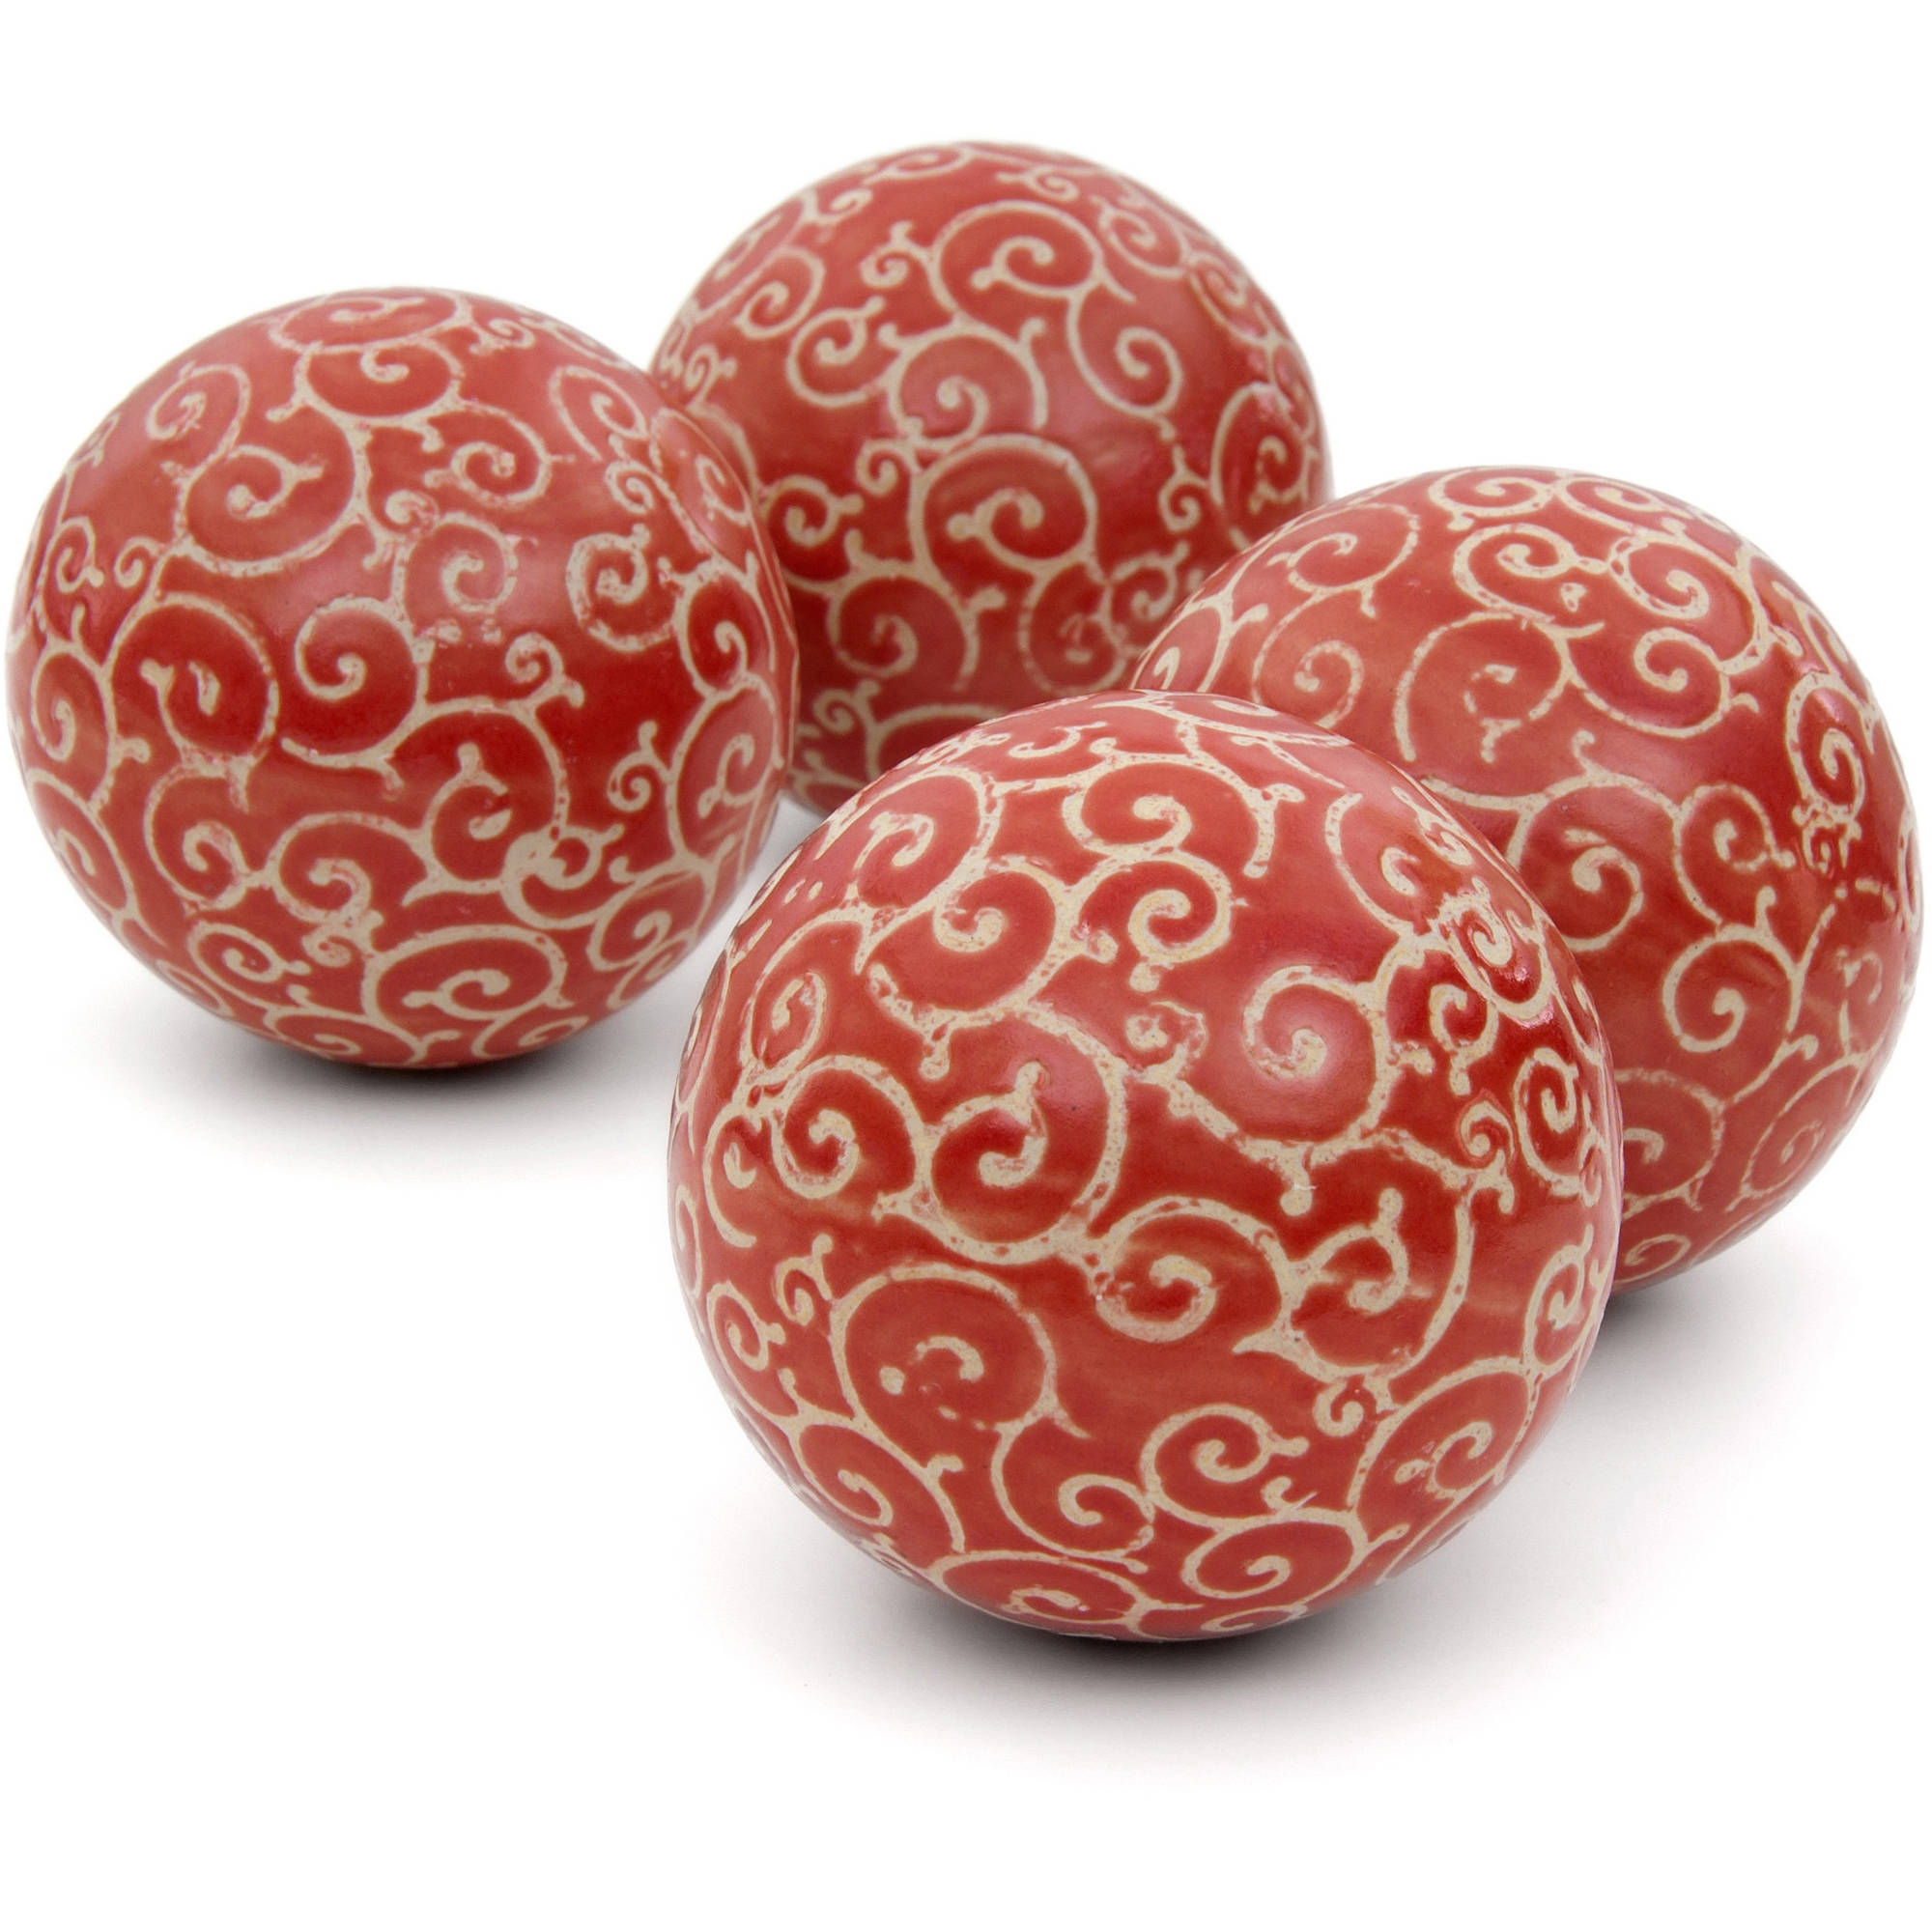 "4"" Red and Beige Vines Porcelain Ball Set by Oriental Furniture"